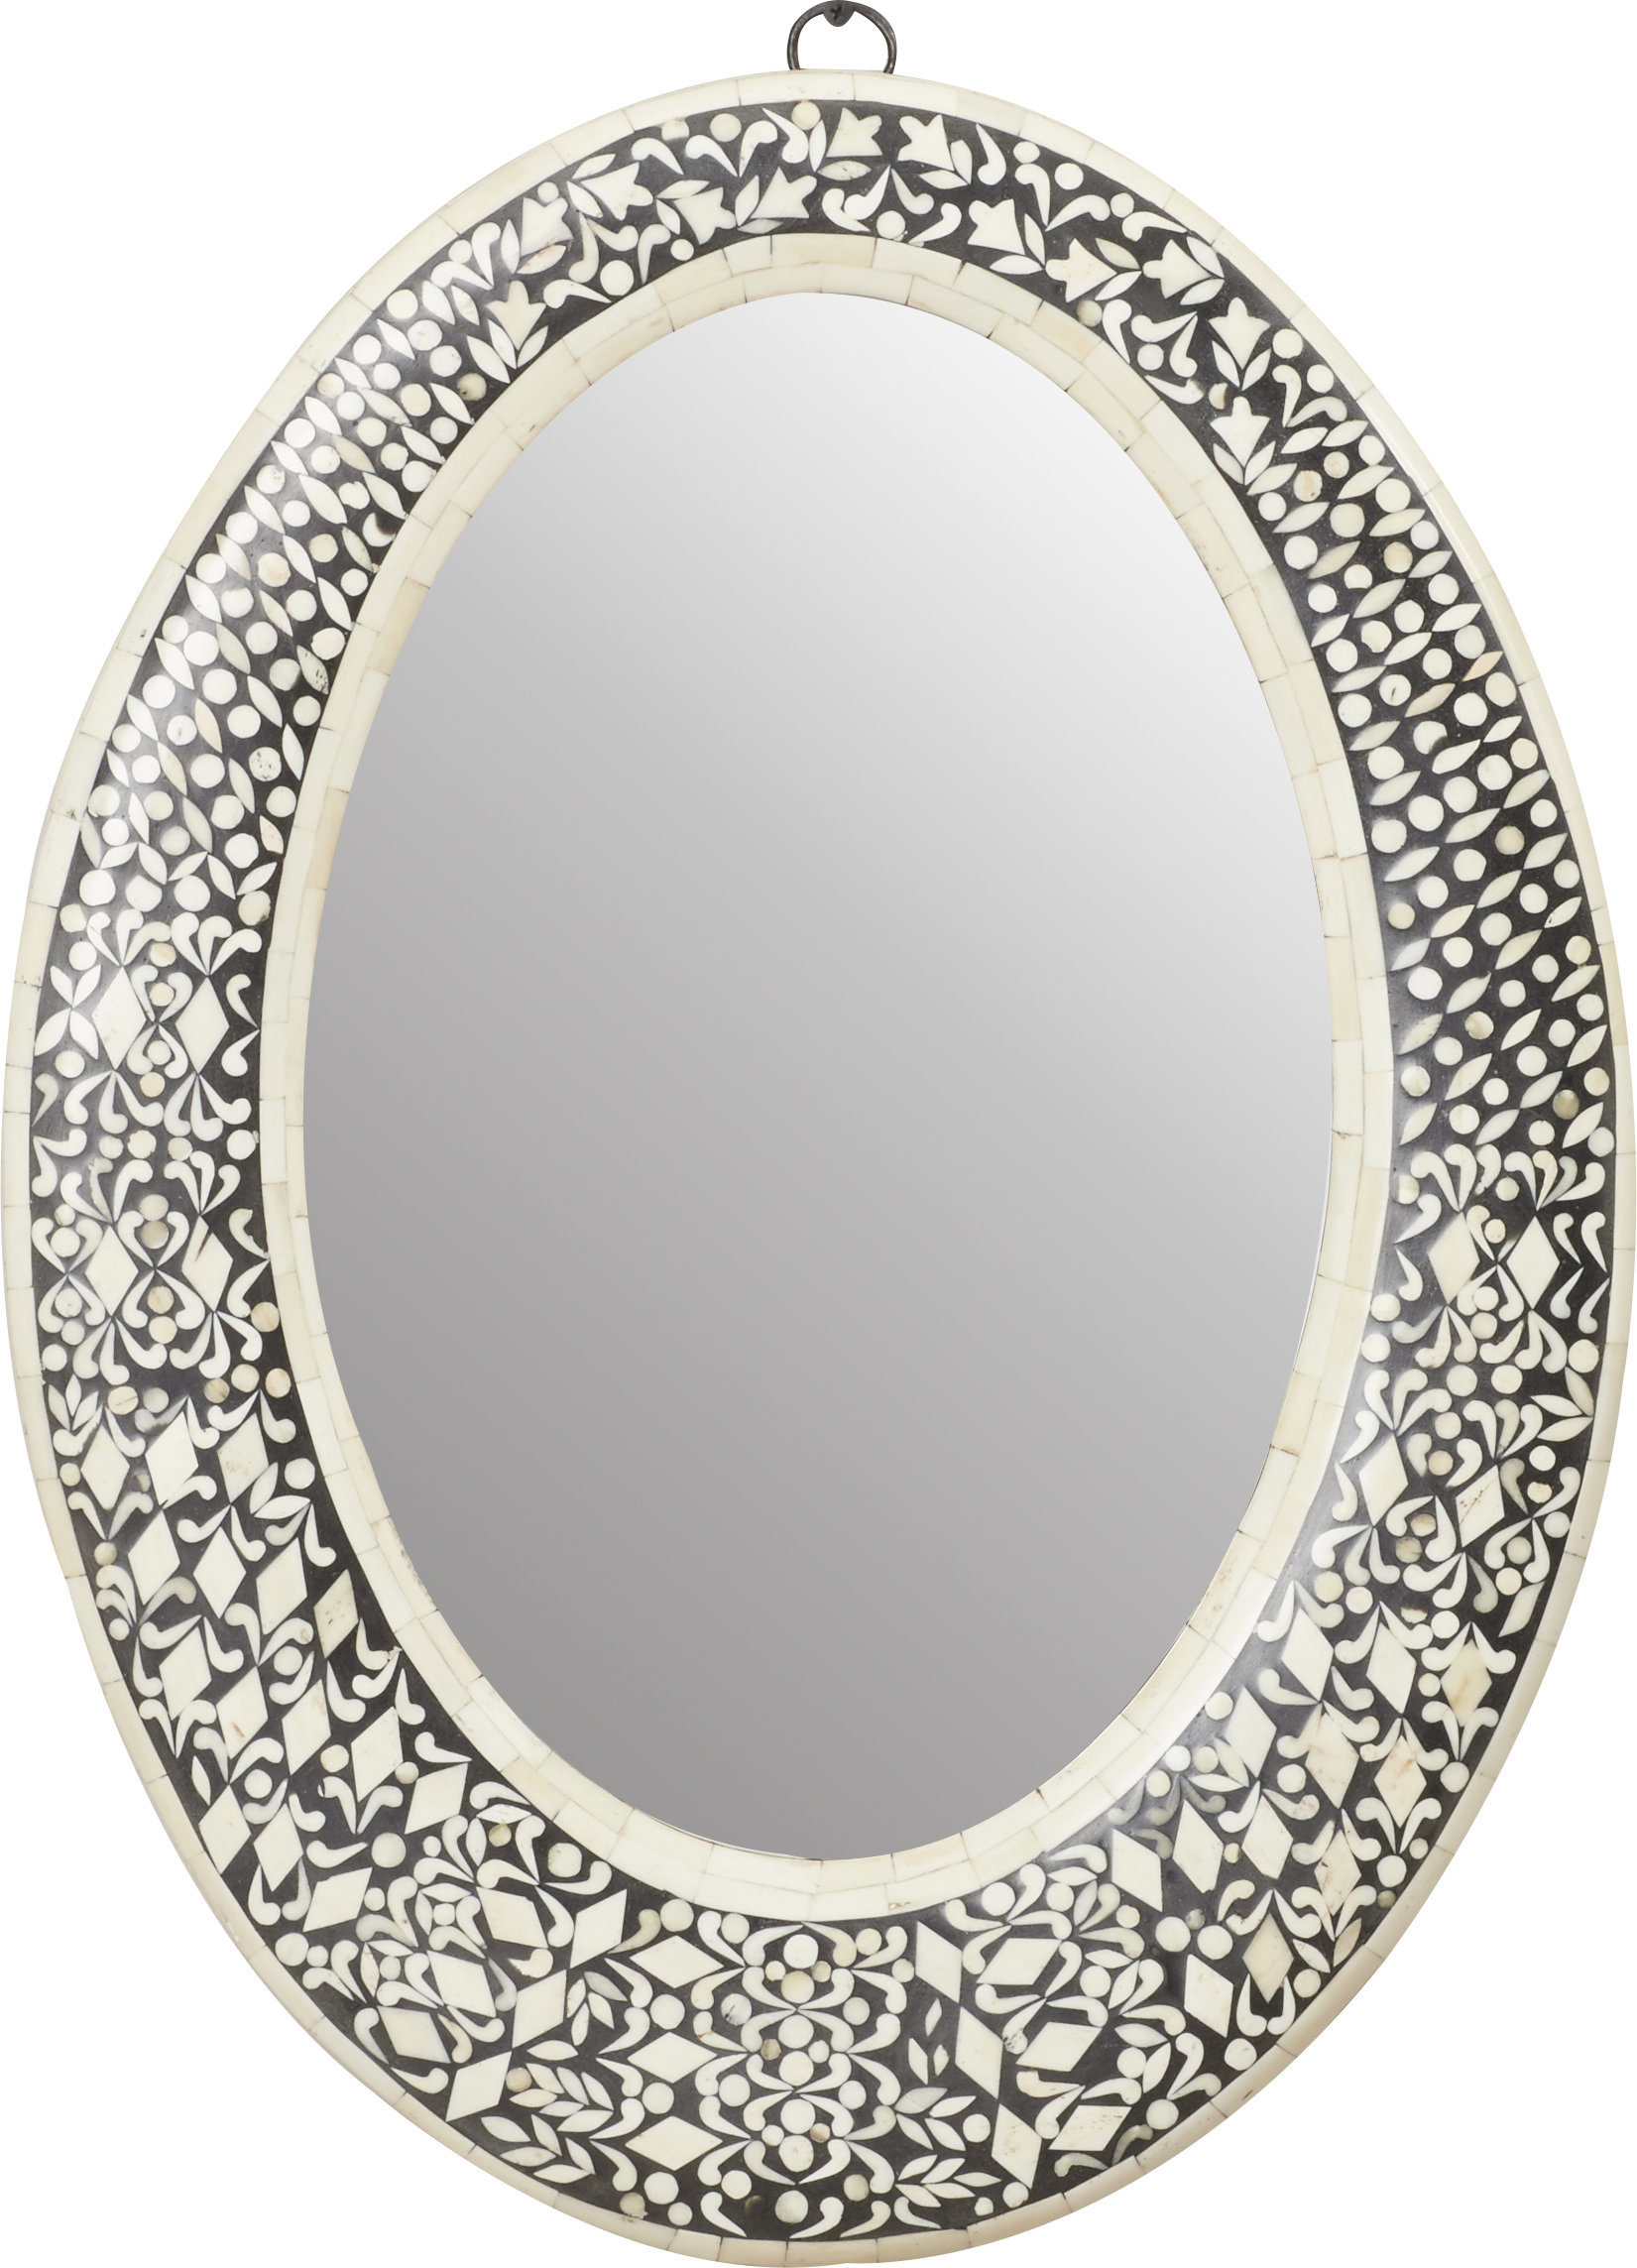 Traditional Oval Wall Mirror & Reviews | Joss & Main Throughout Glen View Beaded Oval Traditional Accent Mirrors (View 5 of 20)